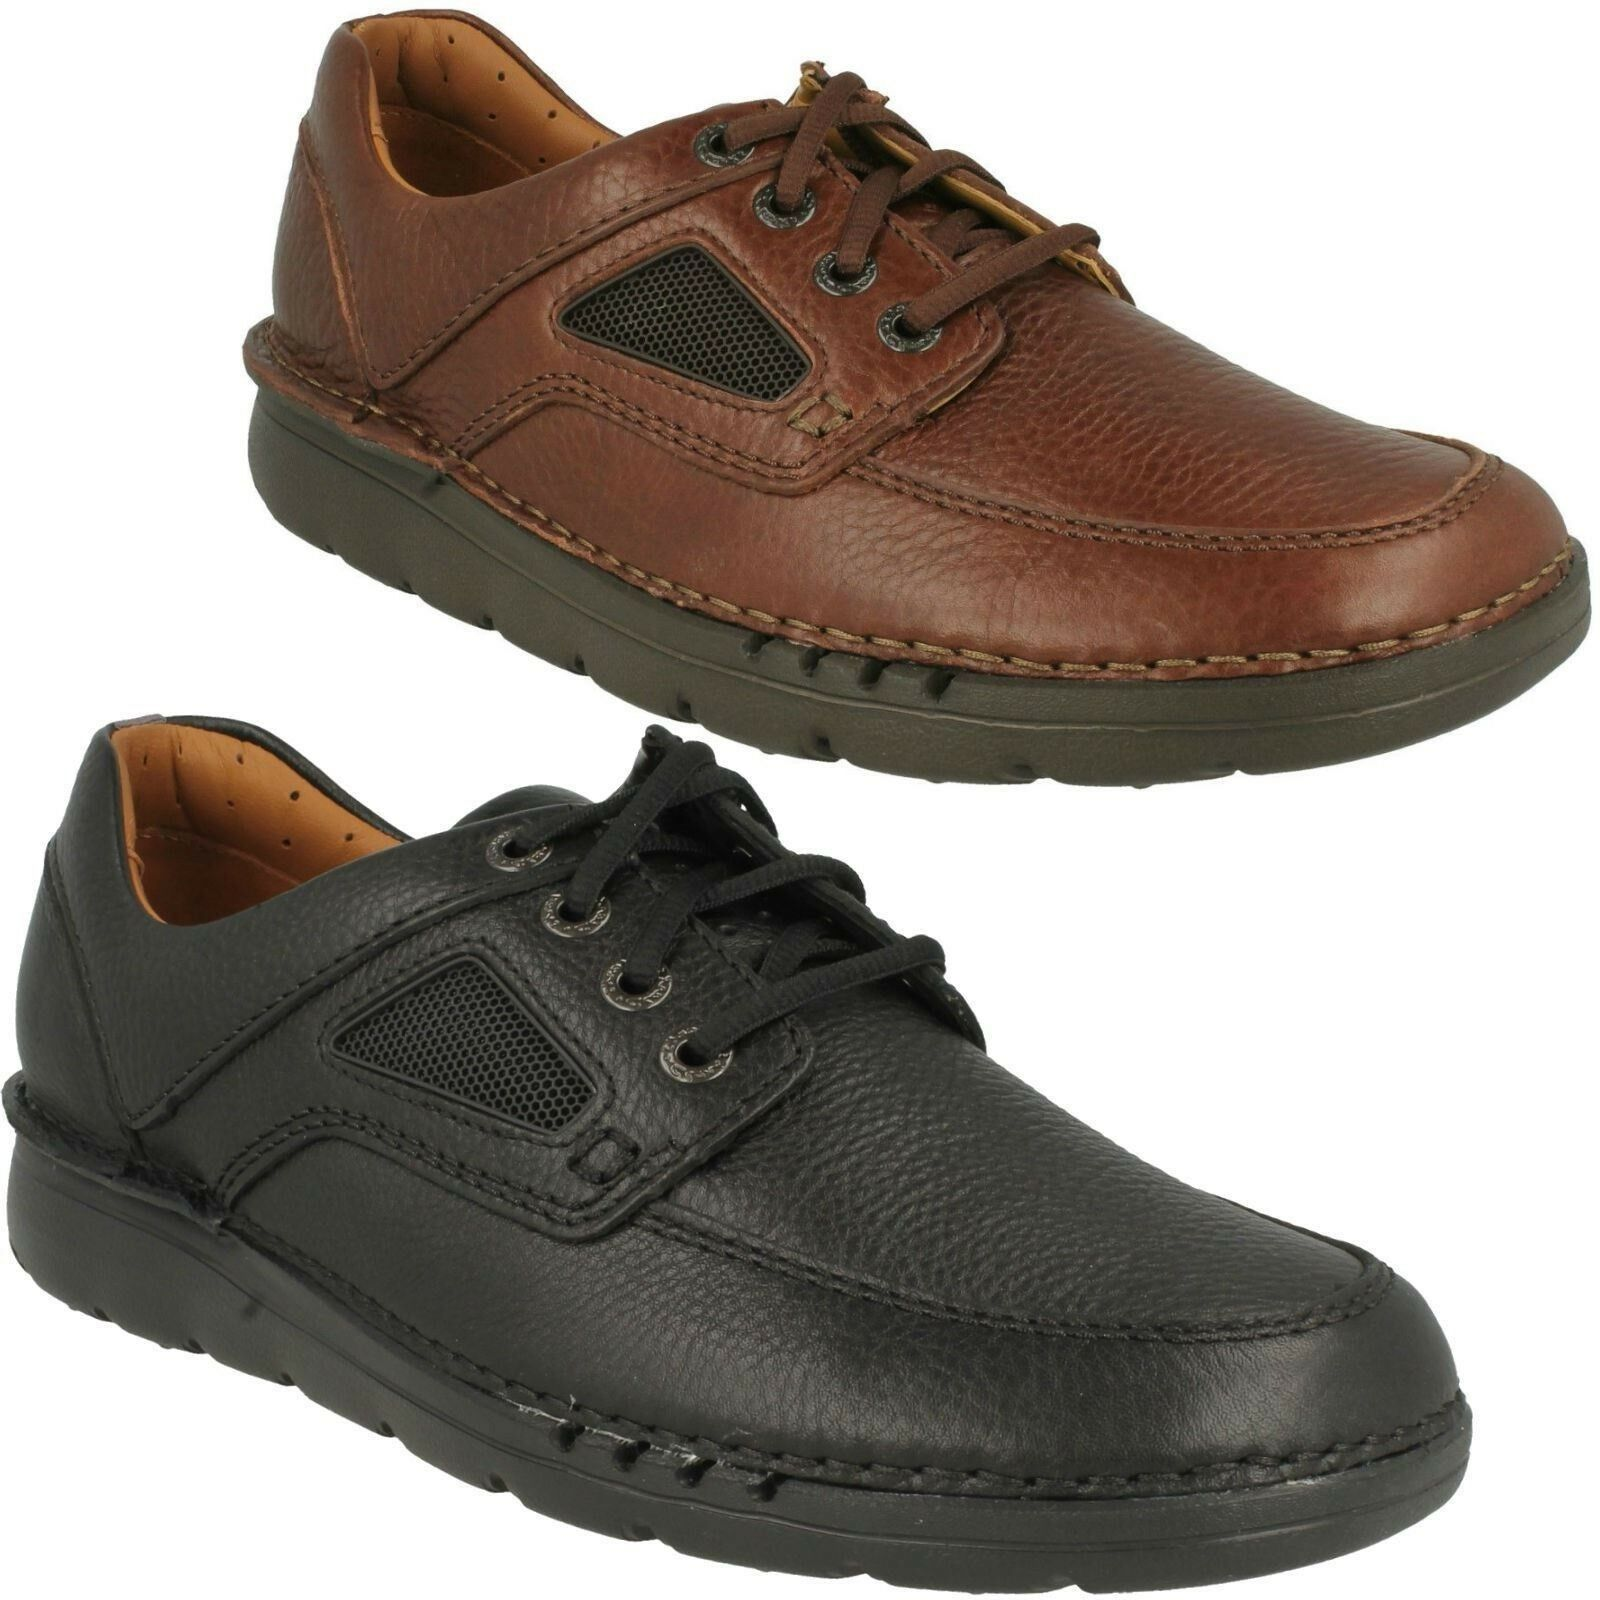 MENS CLARKS GRAIN LEATHER LACE UP UNSTRUCTURED EVERYDAY SHOES SIZE UNNATURE TIME